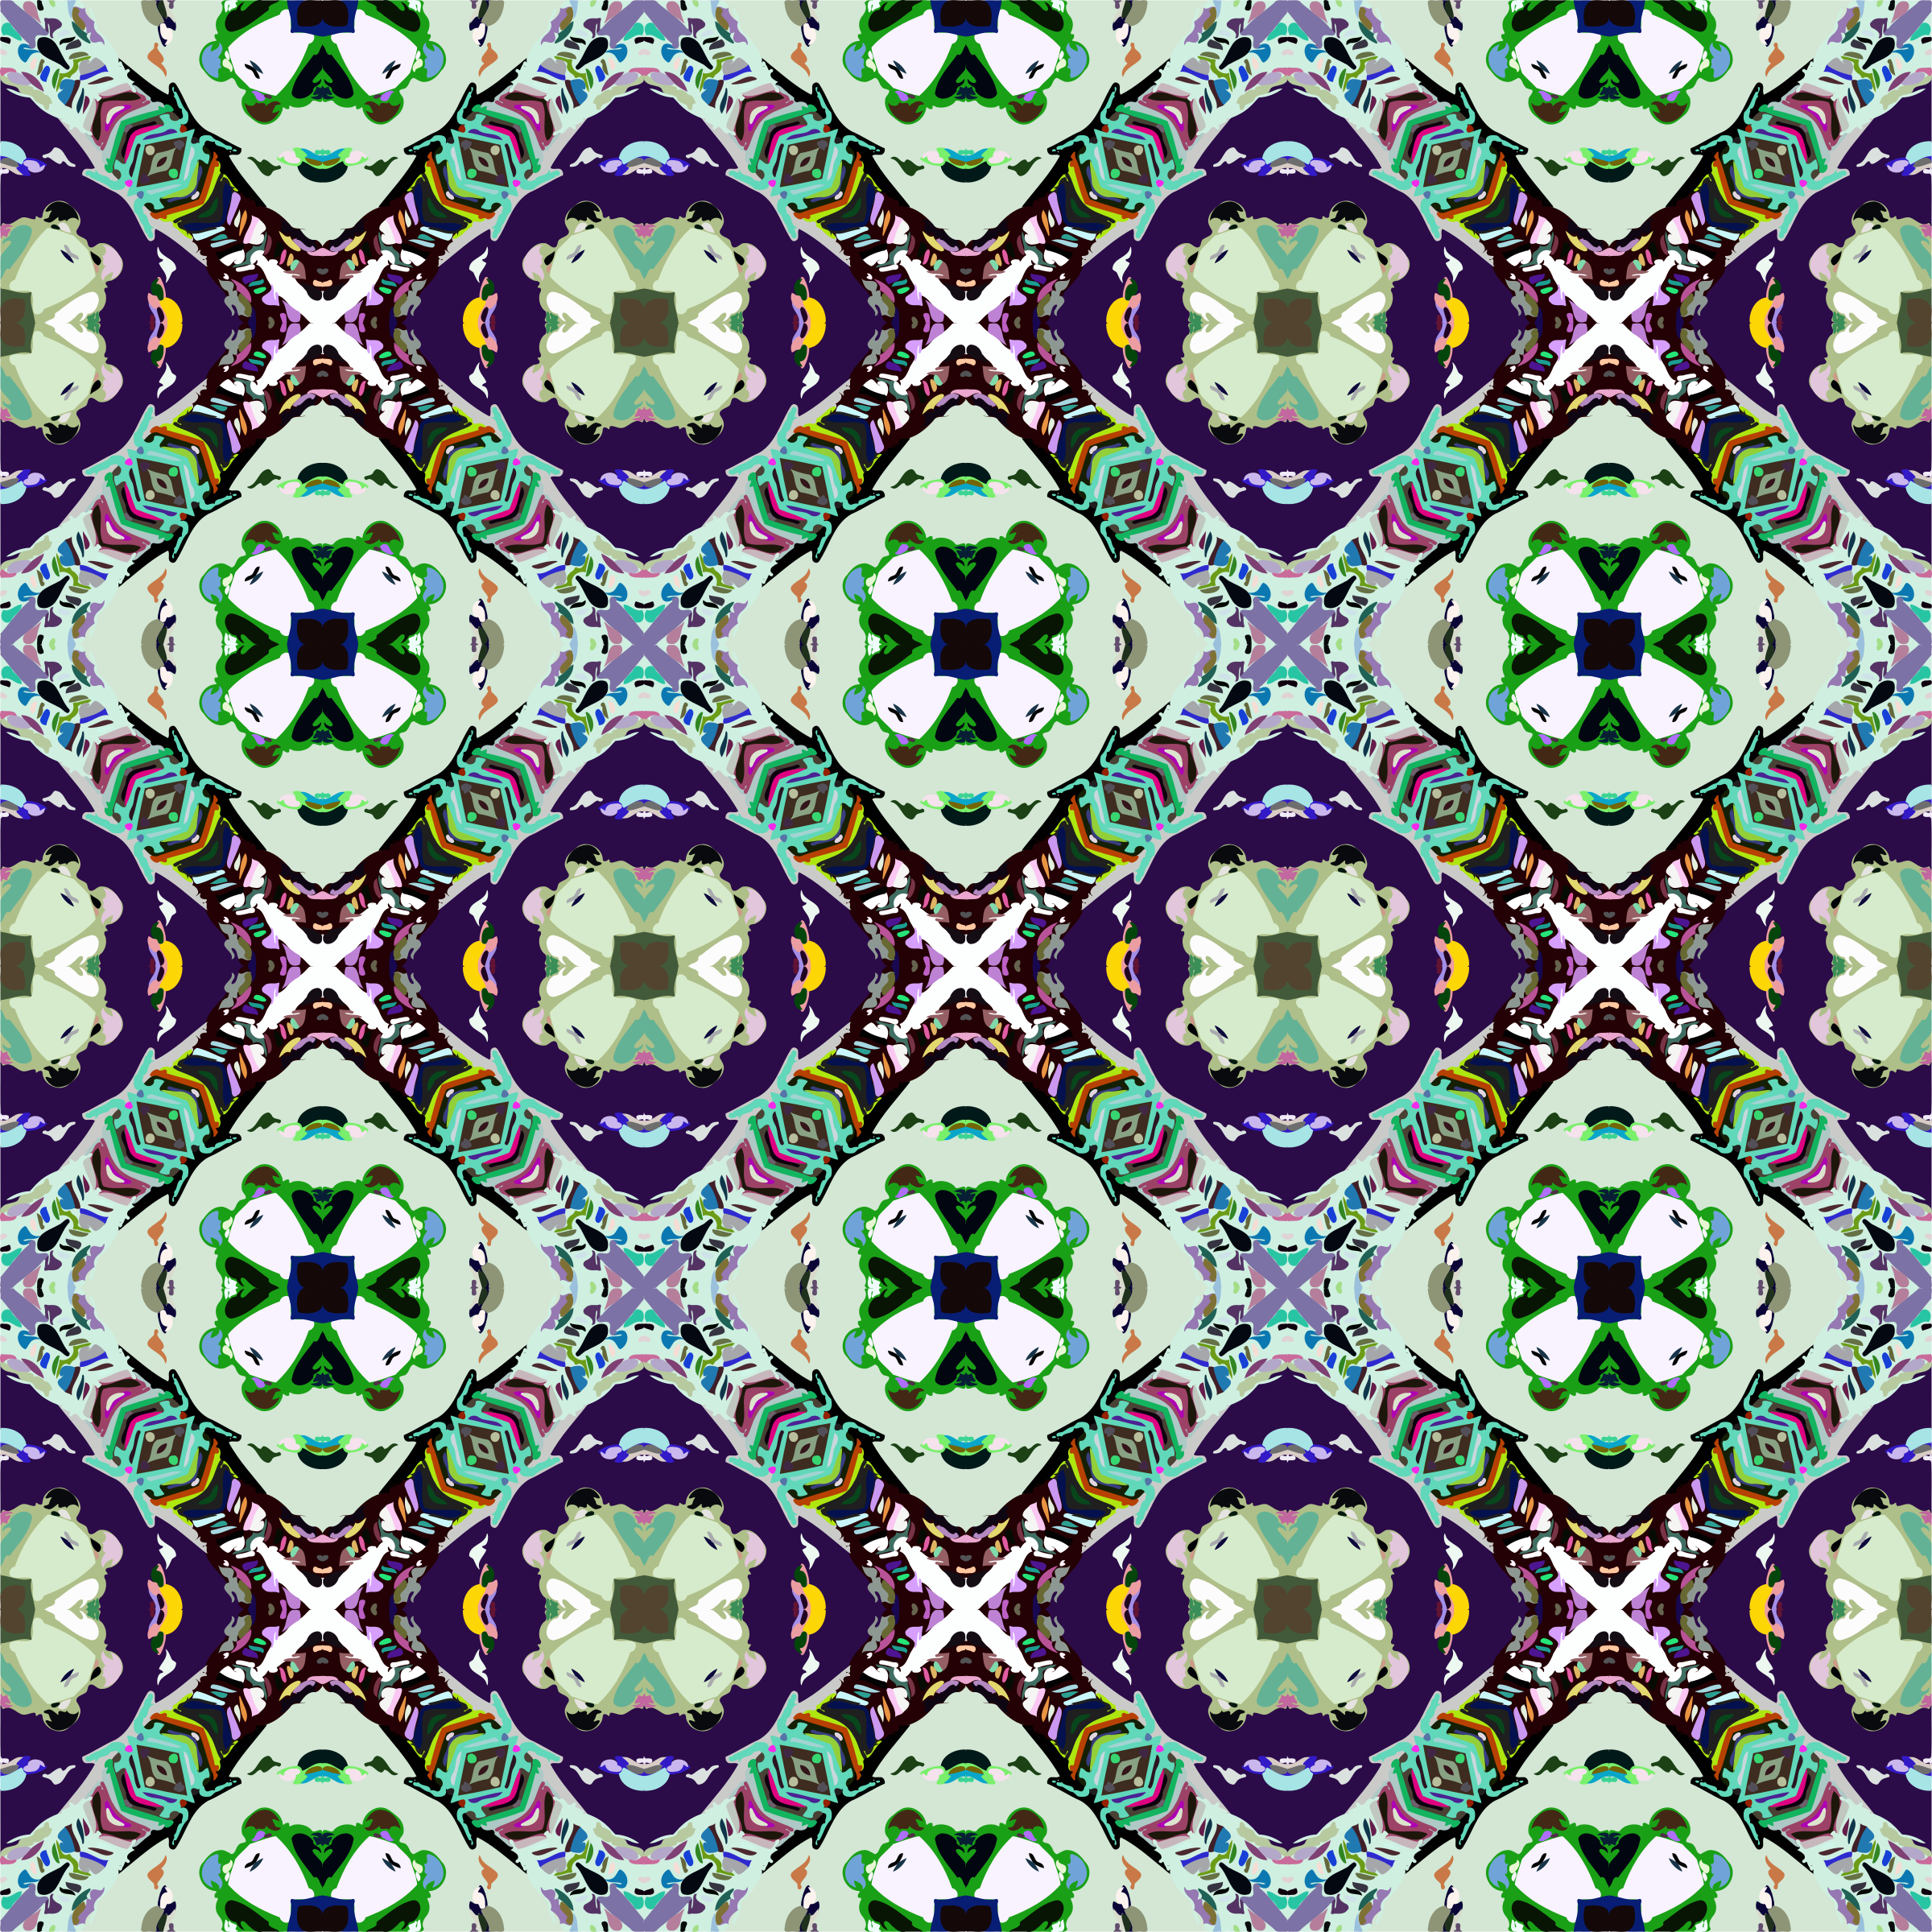 Background pattern 152 (colour 7) by Firkin